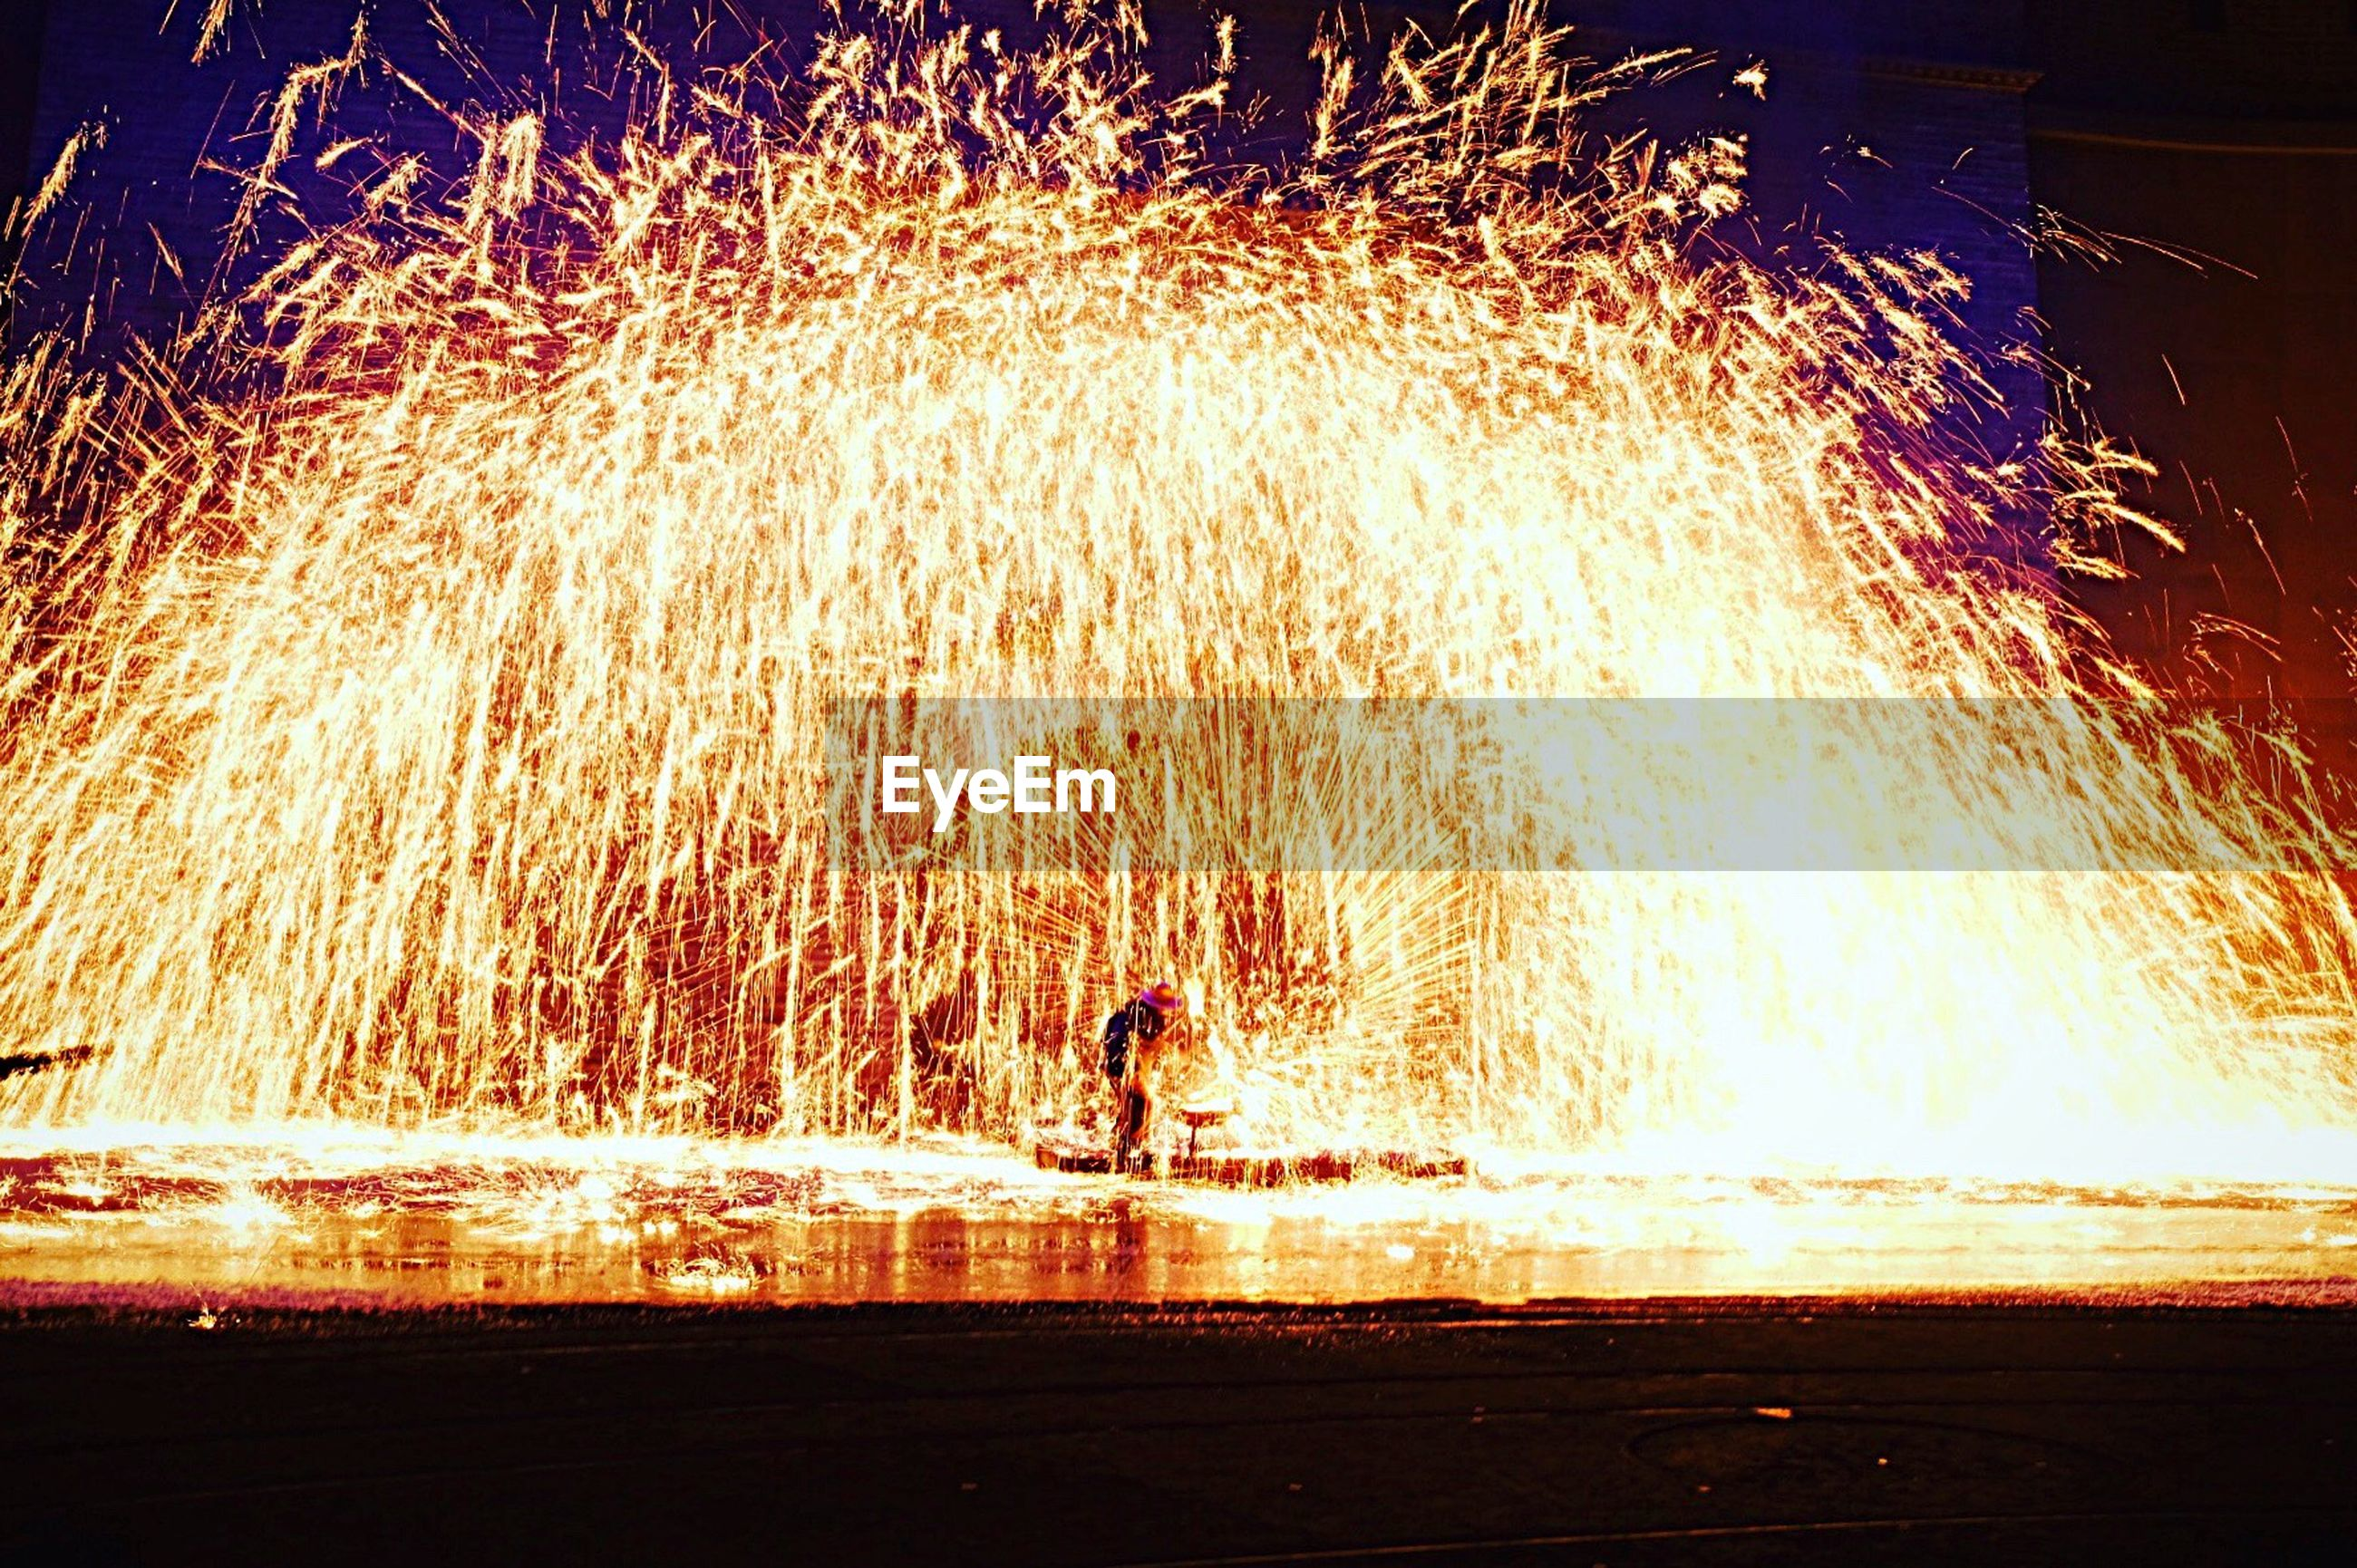 motion, night, celebration, heat - temperature, sparks, outdoors, firework display, illuminated, blurred motion, long exposure, exploding, firework - man made object, event, burning, one person, firework, wire wool, people